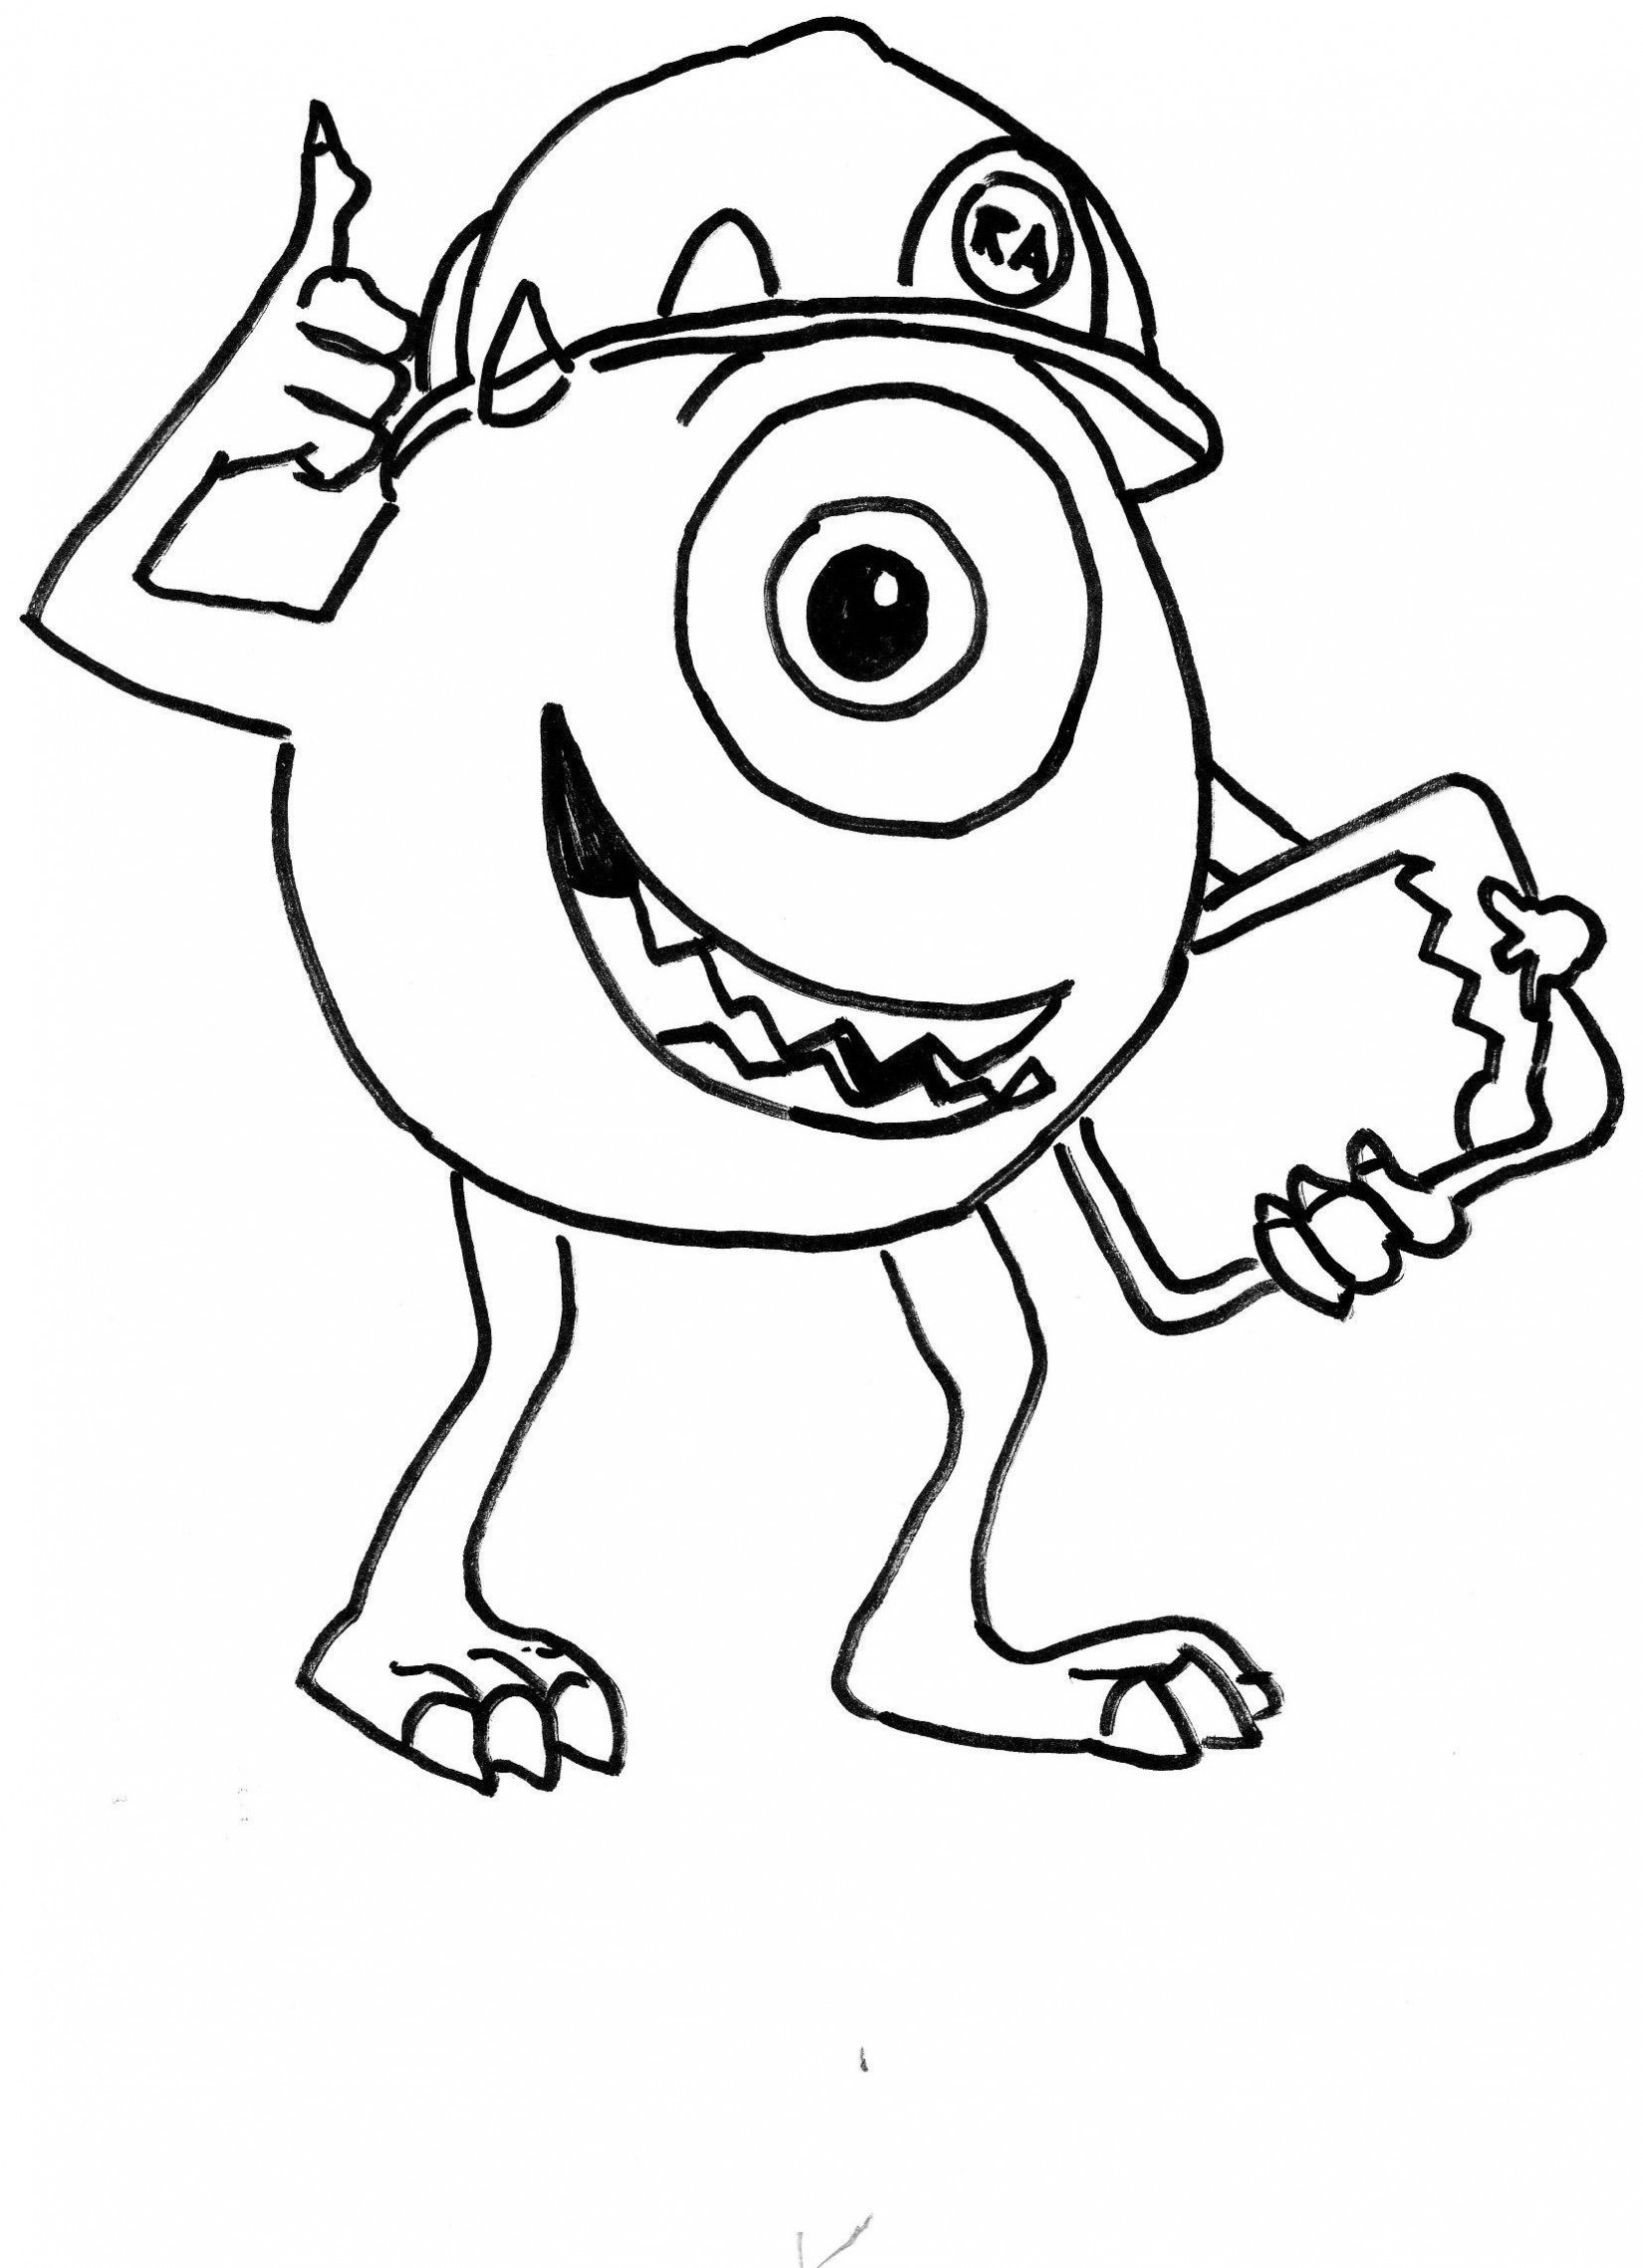 Kid coloring pages to download and print for free